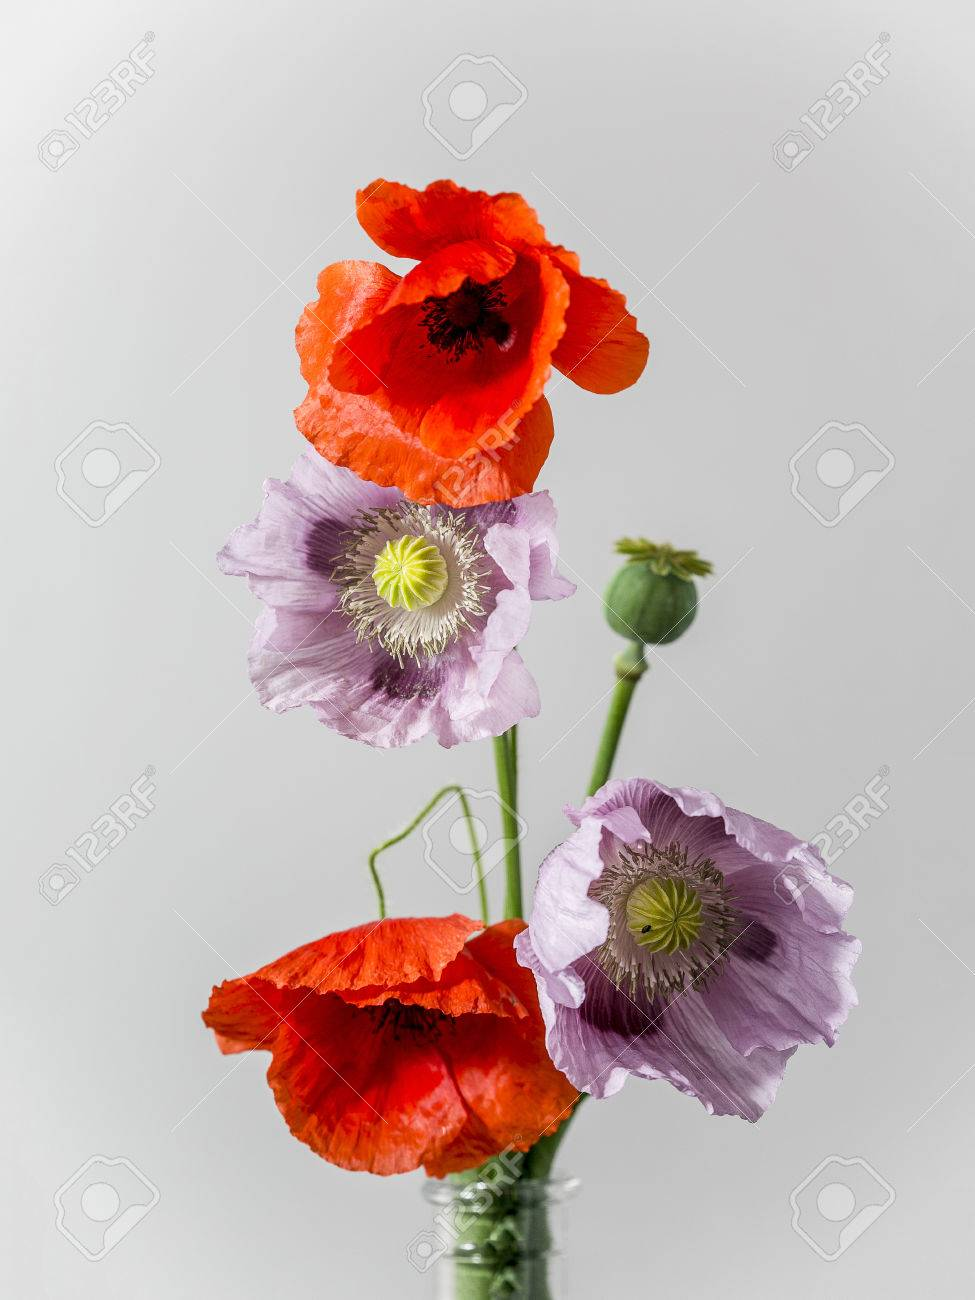 Pink and red poppy flowers in vase on white background - 56196707